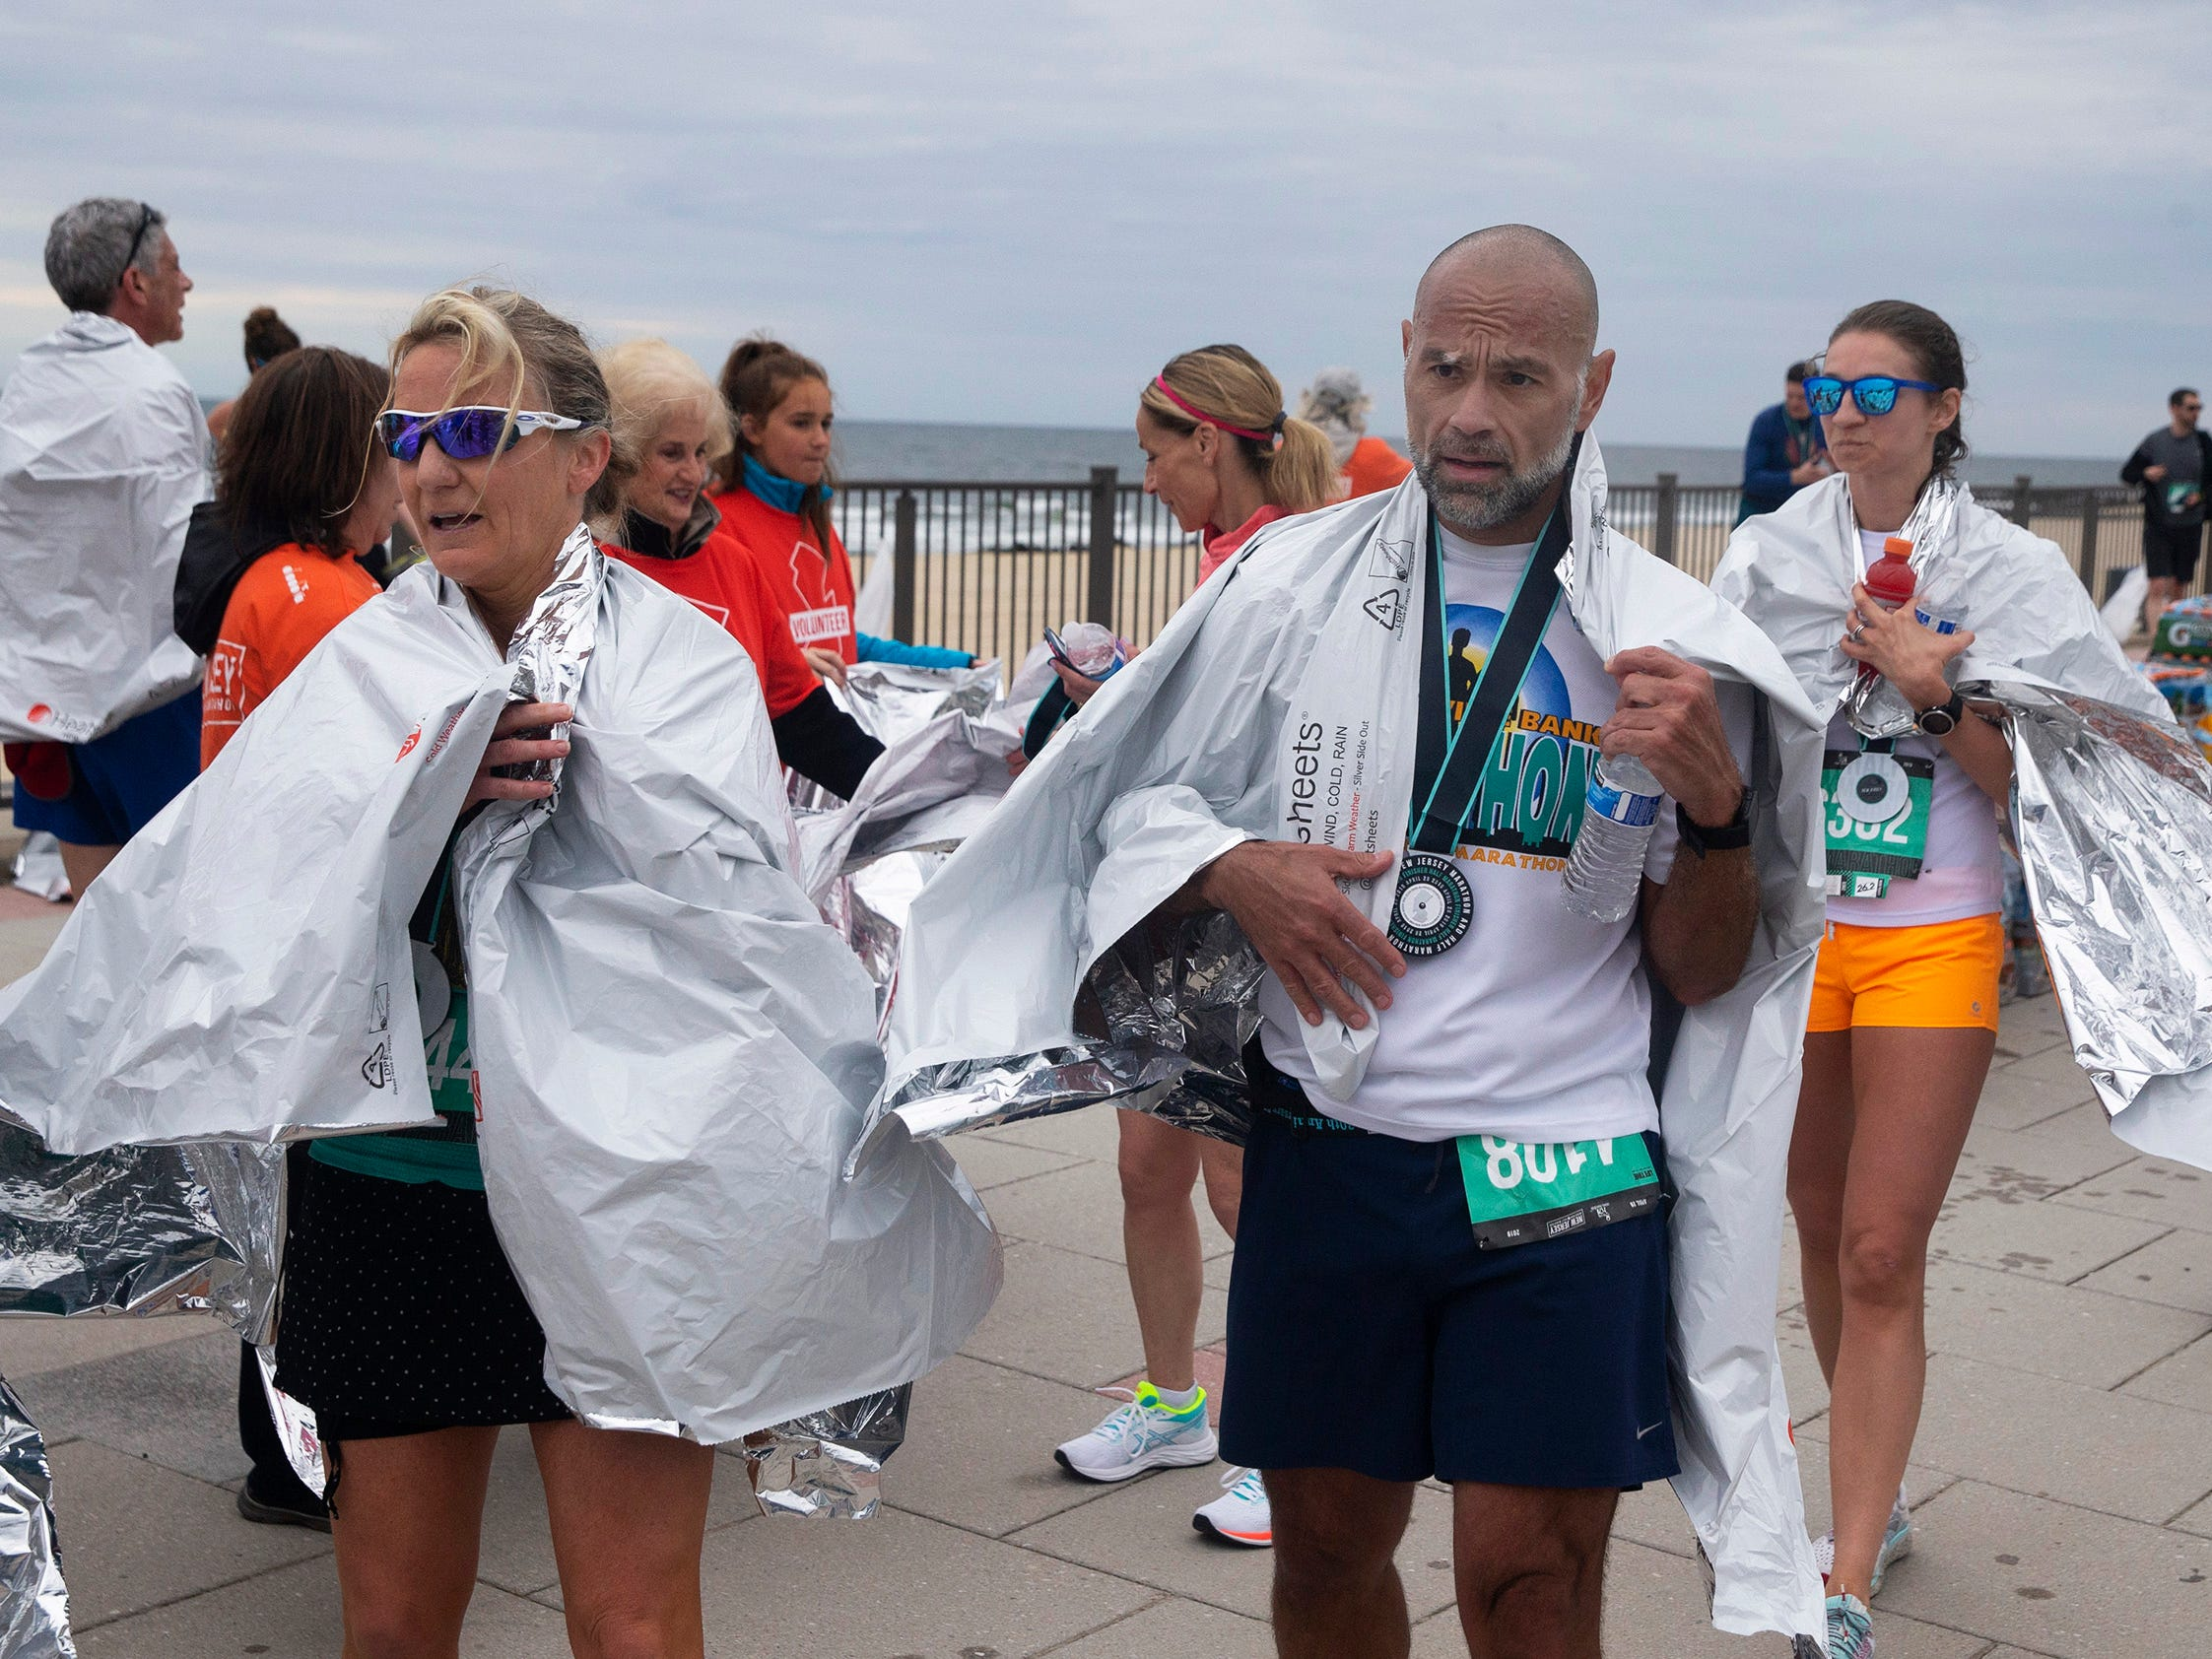 Runners get thermal wraps to keep warm after finishing marthon. 2019 Novo Nordisk New Jersey Marathon and Half Marathon which started at Monmouth Park in Oceanport and ended at Ocean Promenade in Long Branch.